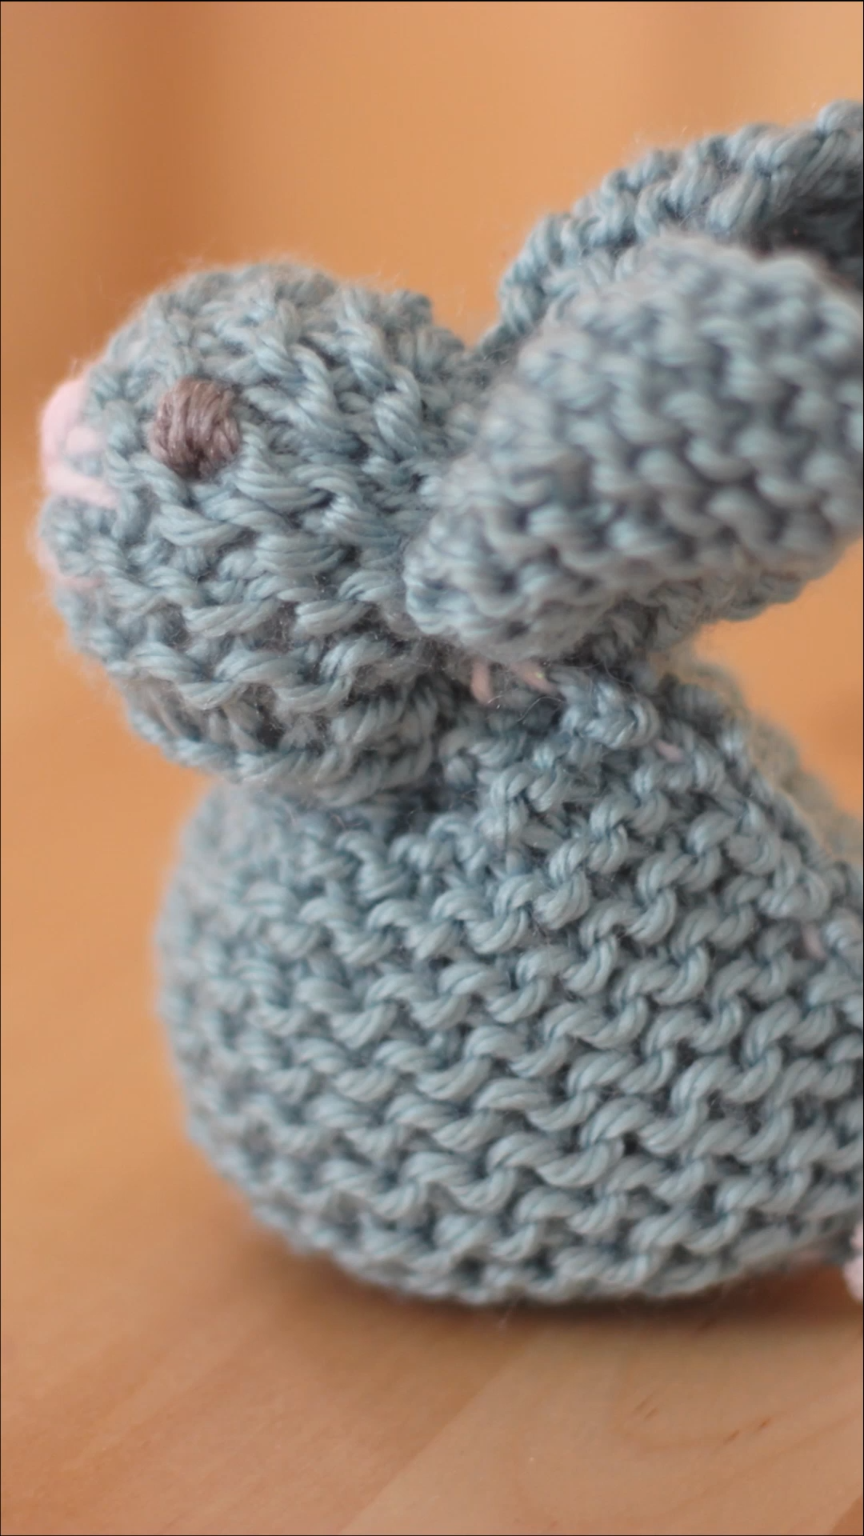 How to Knit a Bunny from a Square #knittingprojects